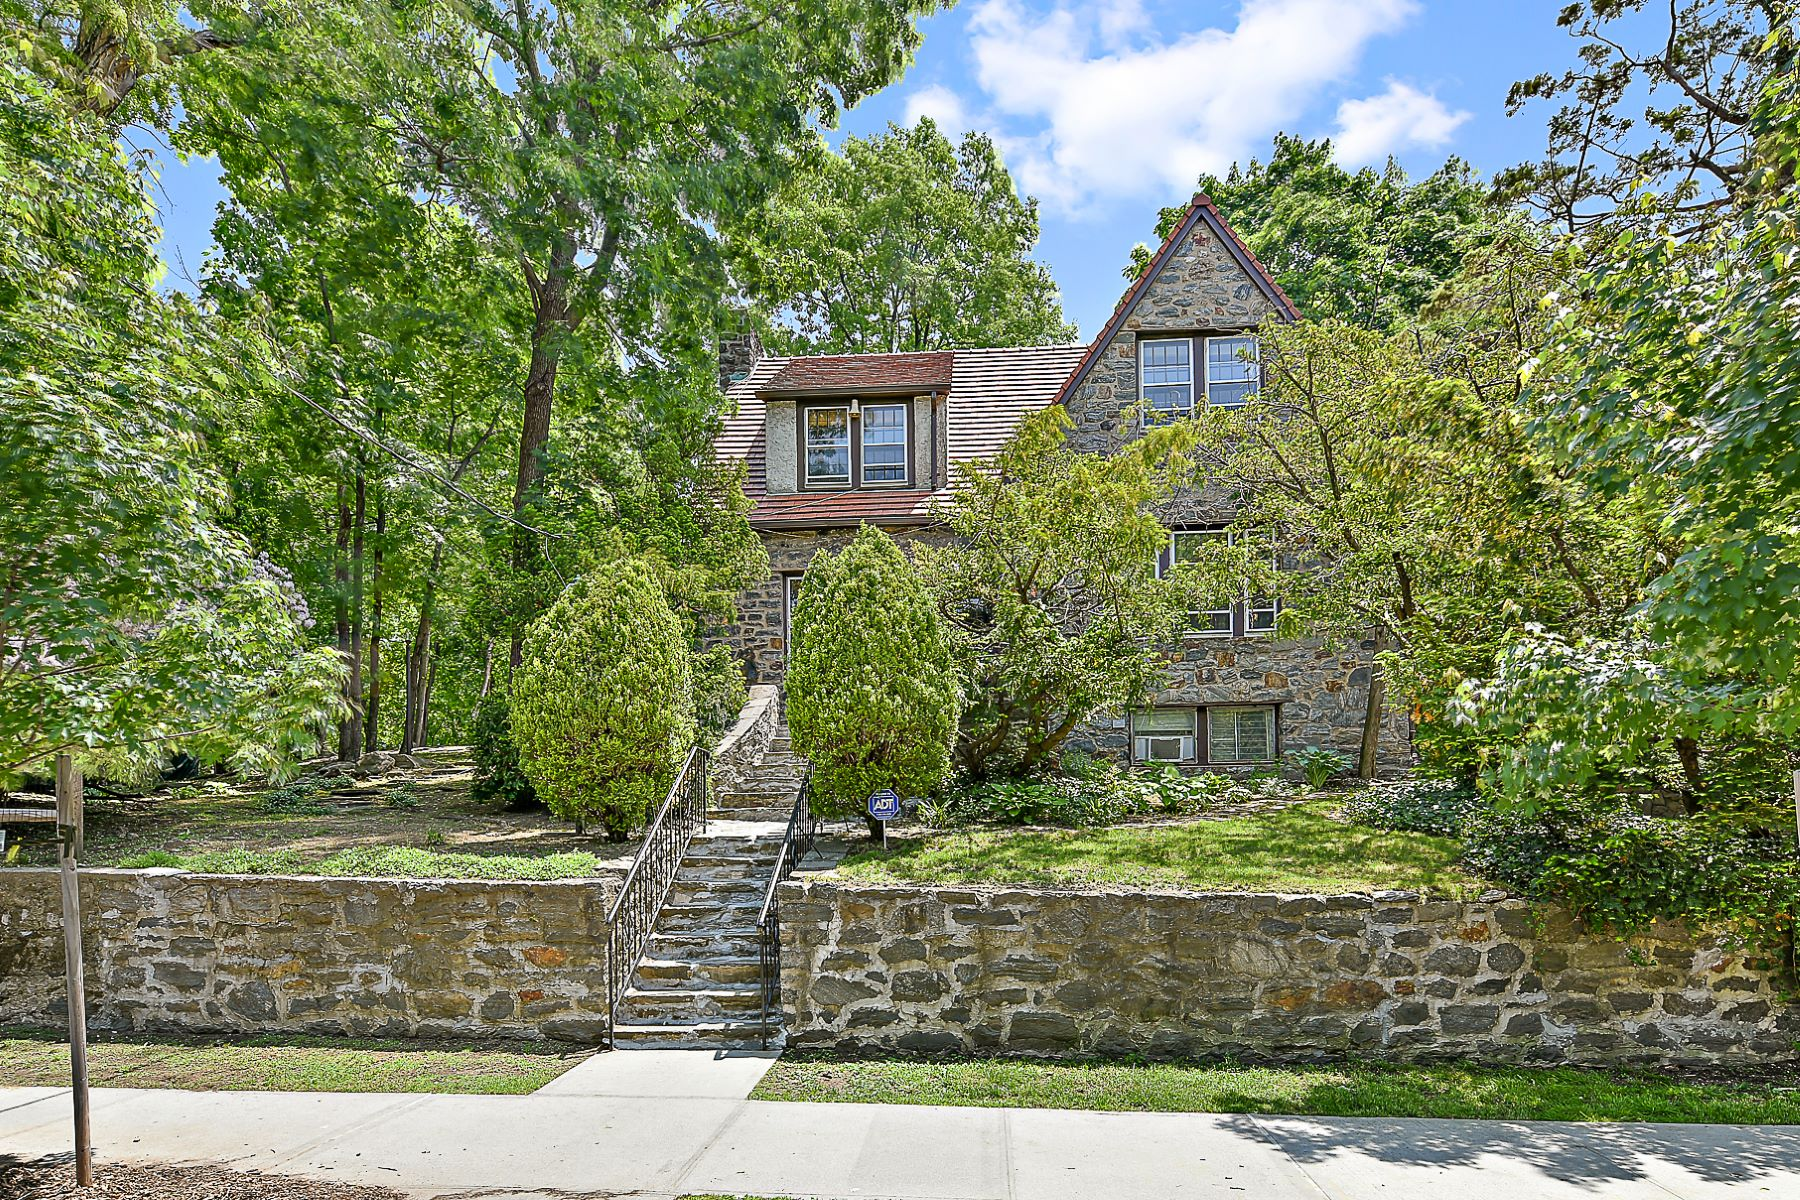 Single Family Home for Sale at Single-Family Stone House with 2-Floors and Large Basement 3130 Arlington Avenue Riverdale, New York 10463 United States